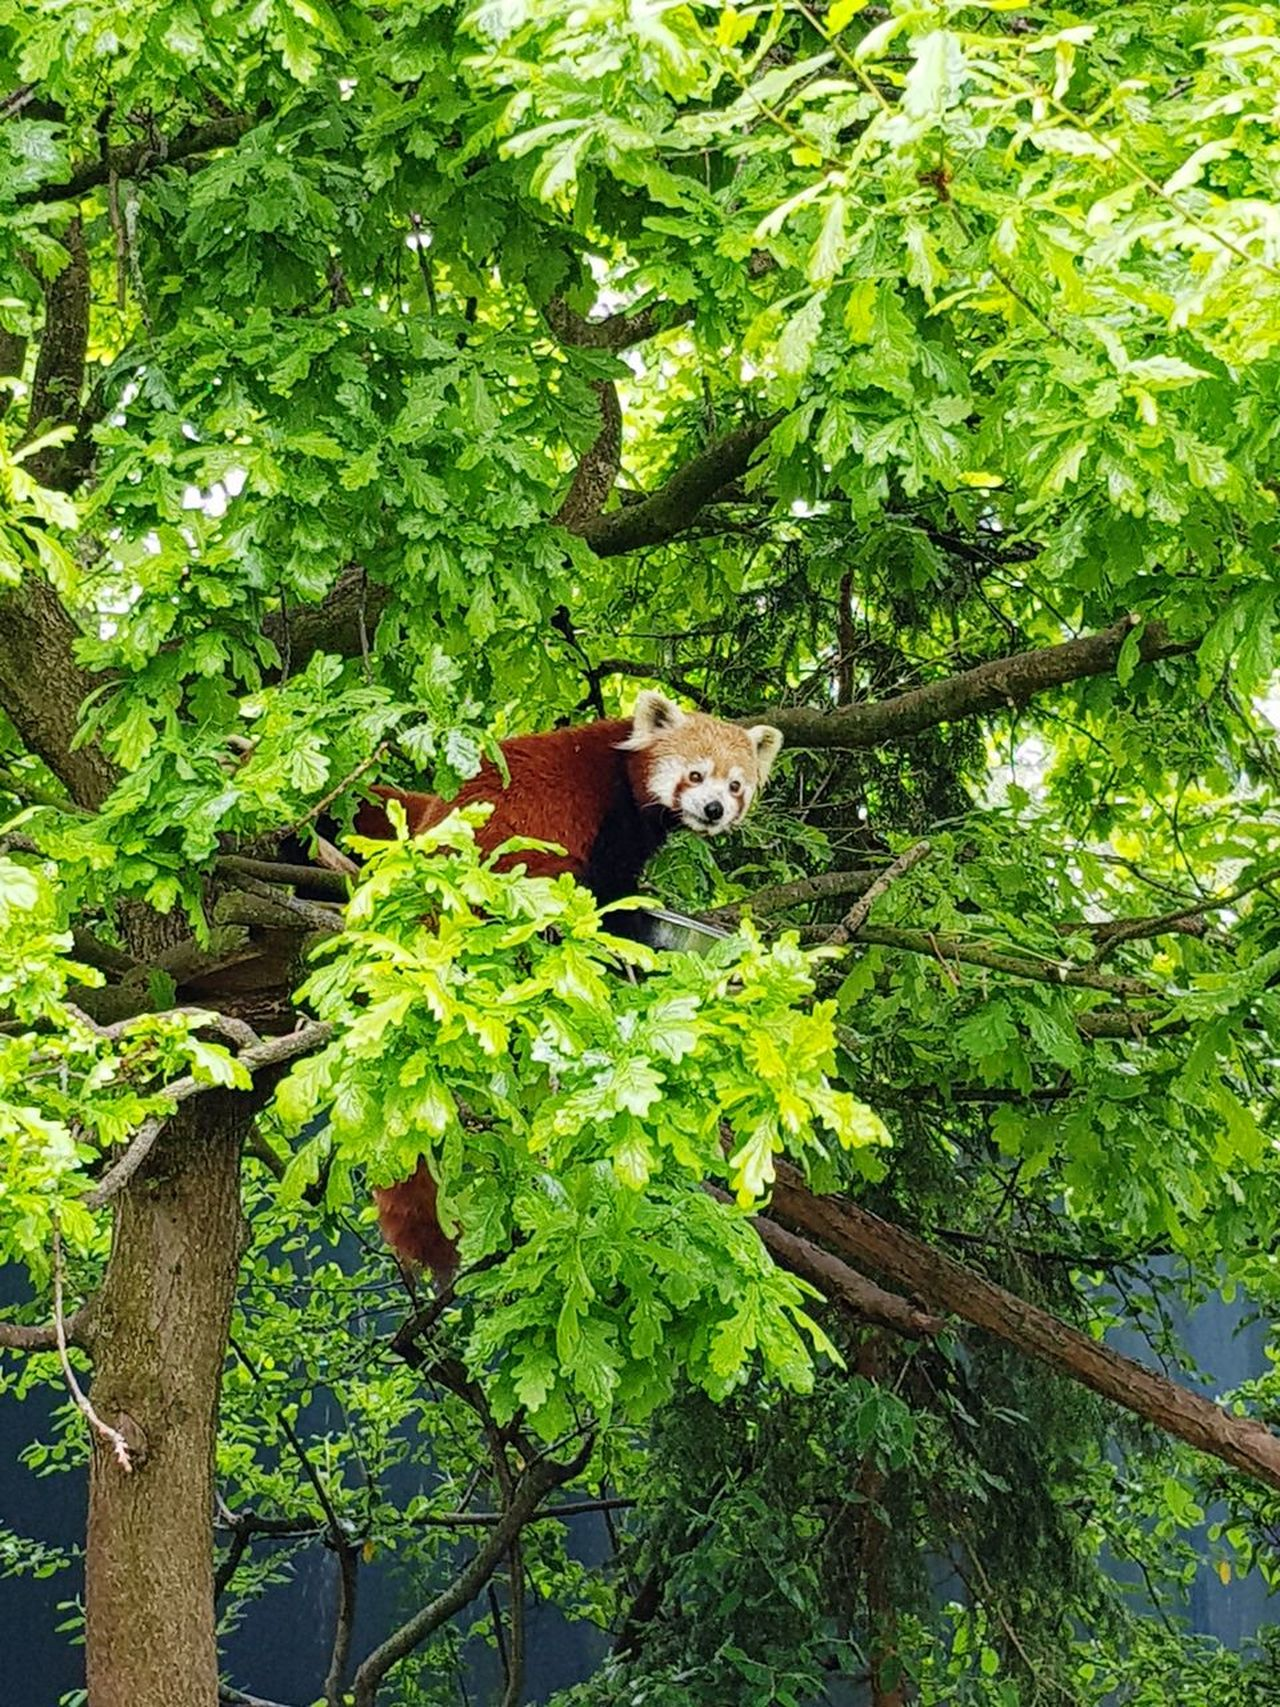 Green Color Tree Growth Nature Outdoors No People Animal Themes Day One Animal Animal Wildlife Beauty In Nature Branch Perching Nature Panda Red Panda Cute Sweet Curious Bright